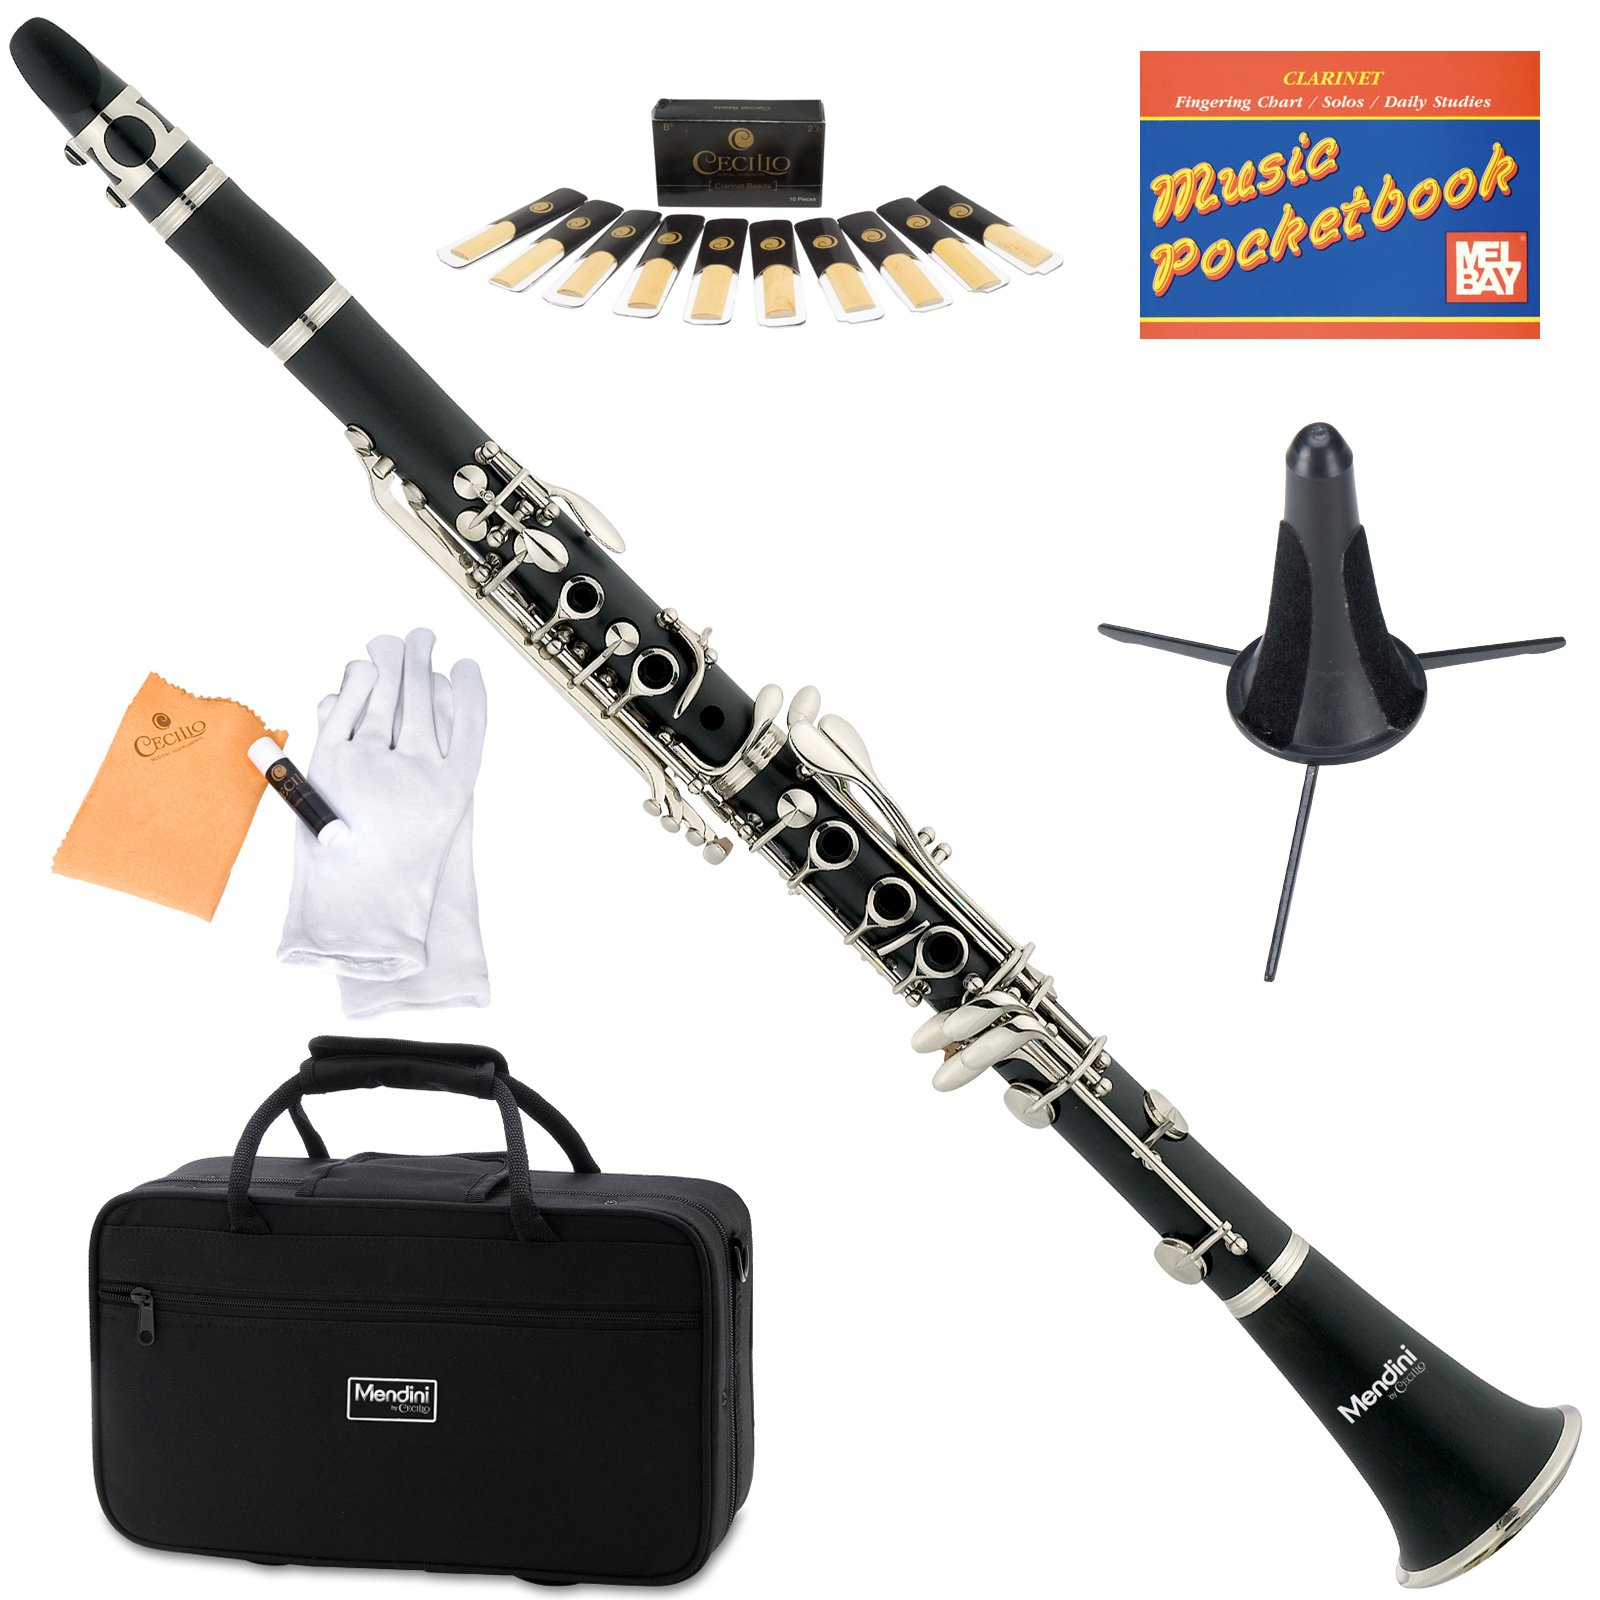 Mendini MCT-E+SD+PB Black Ebonite B Flat Clarinet with Case, Stand, Pocketbook, Mouthpiece, 10 Reeds and More by Mendini by Cecilio